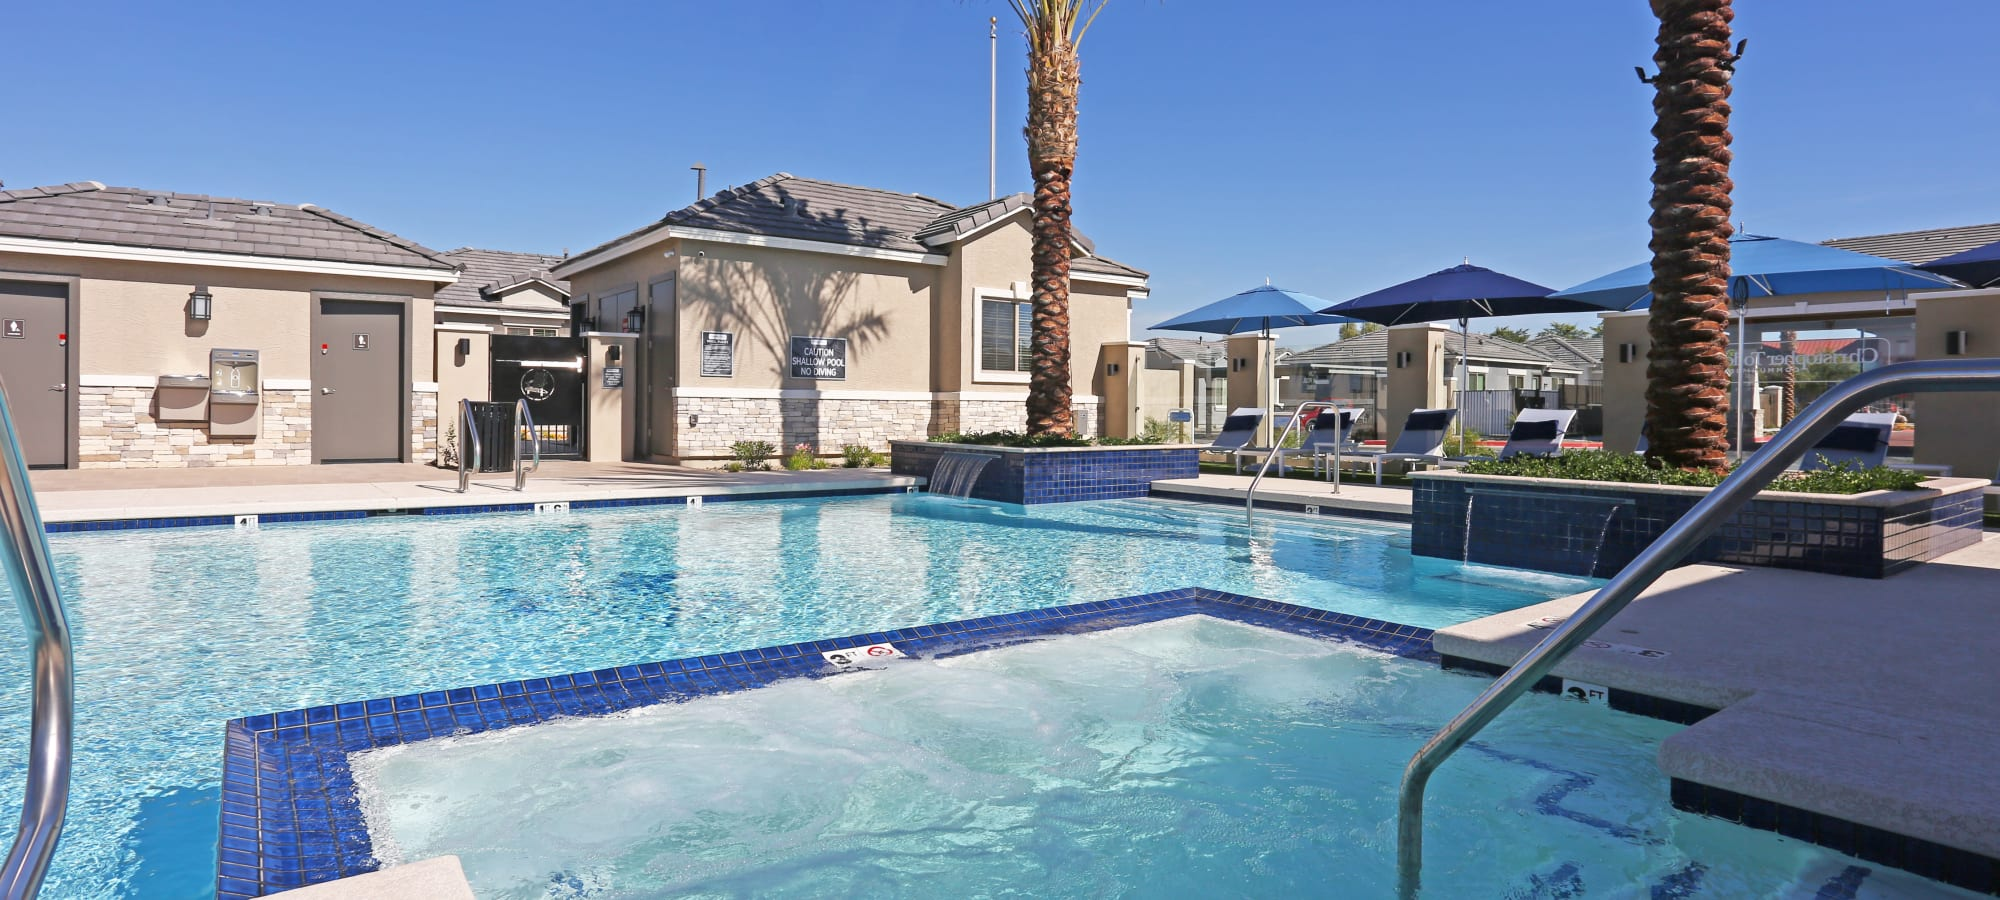 Pool and adjacent spa at Christopher Todd Communities On Happy Valley in Peoria, Arizona